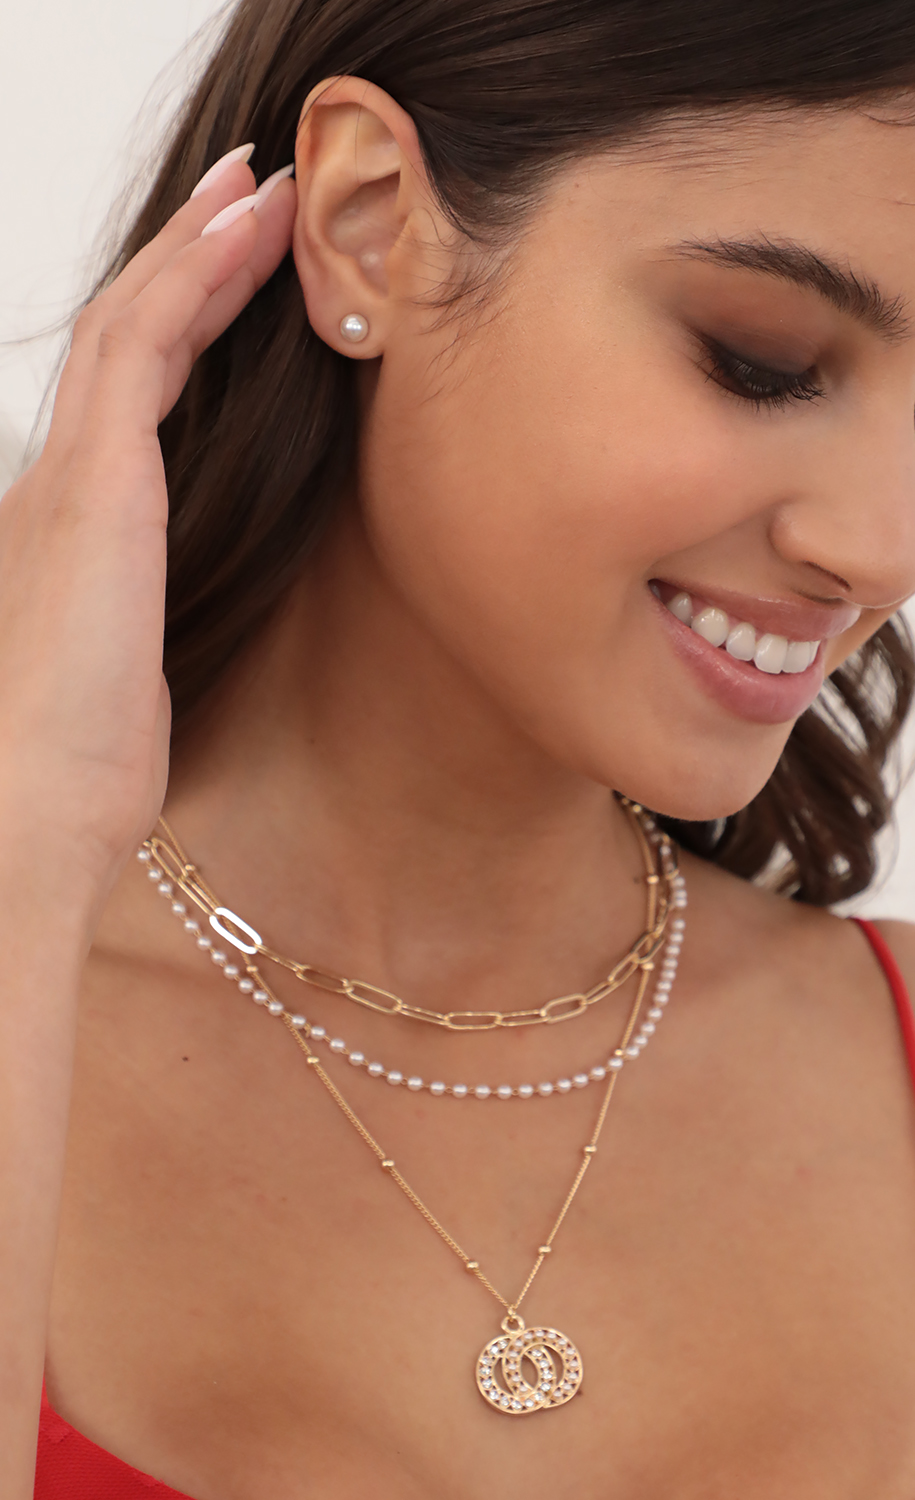 Pearl Interlocking Ring Necklace and Earring Set